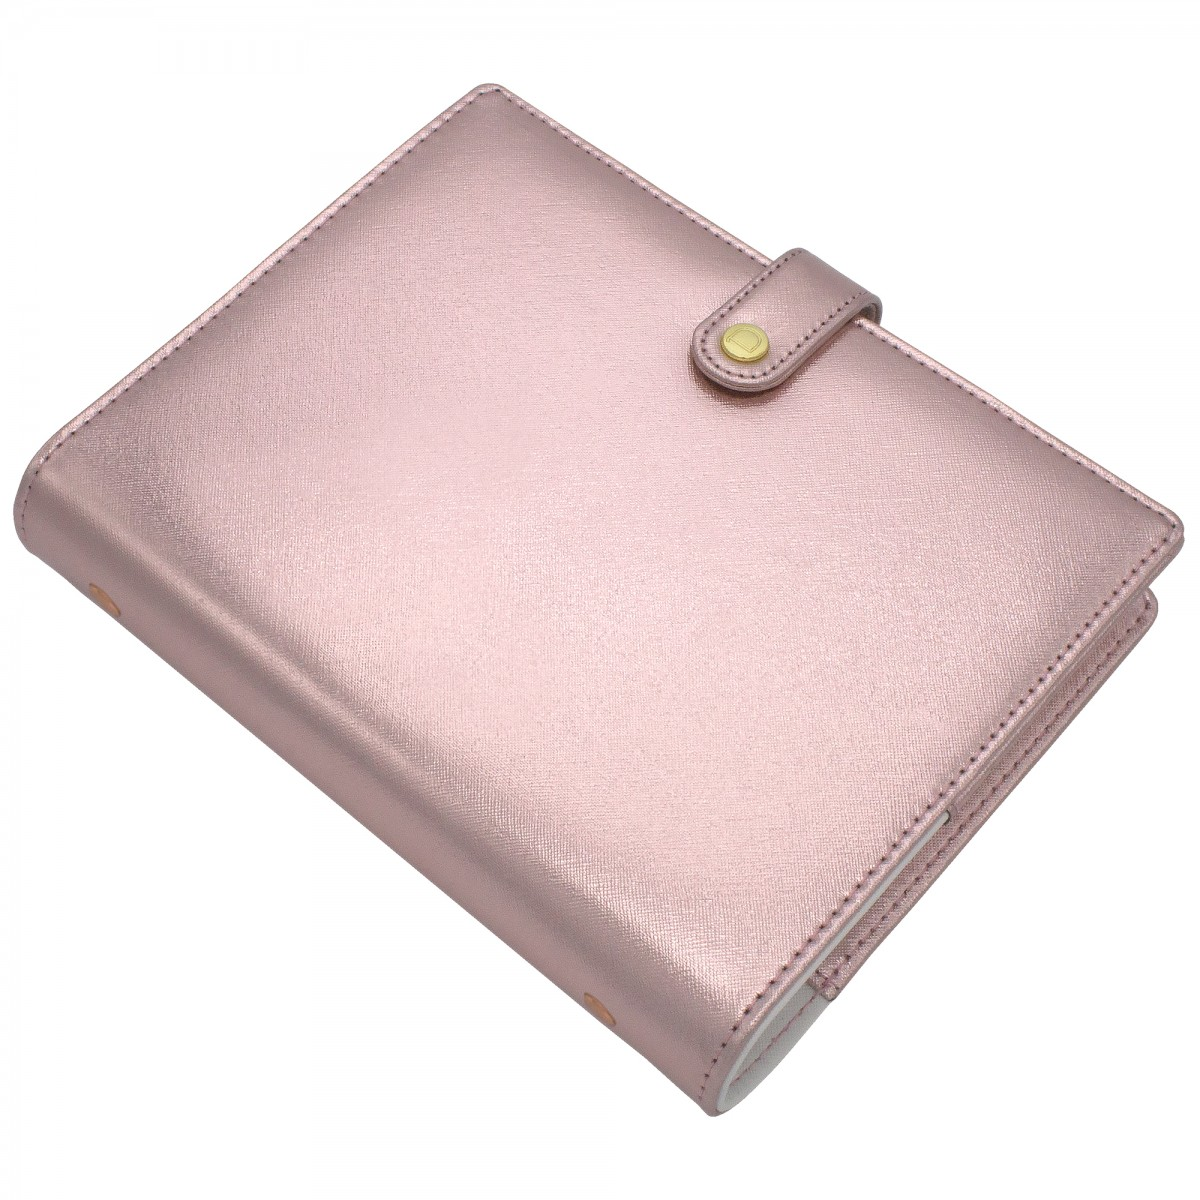 [Minor Flaw] DISCAGENDA DIVA ROSEGOLD RINGBOUND LARGE SNAP CLOSURE